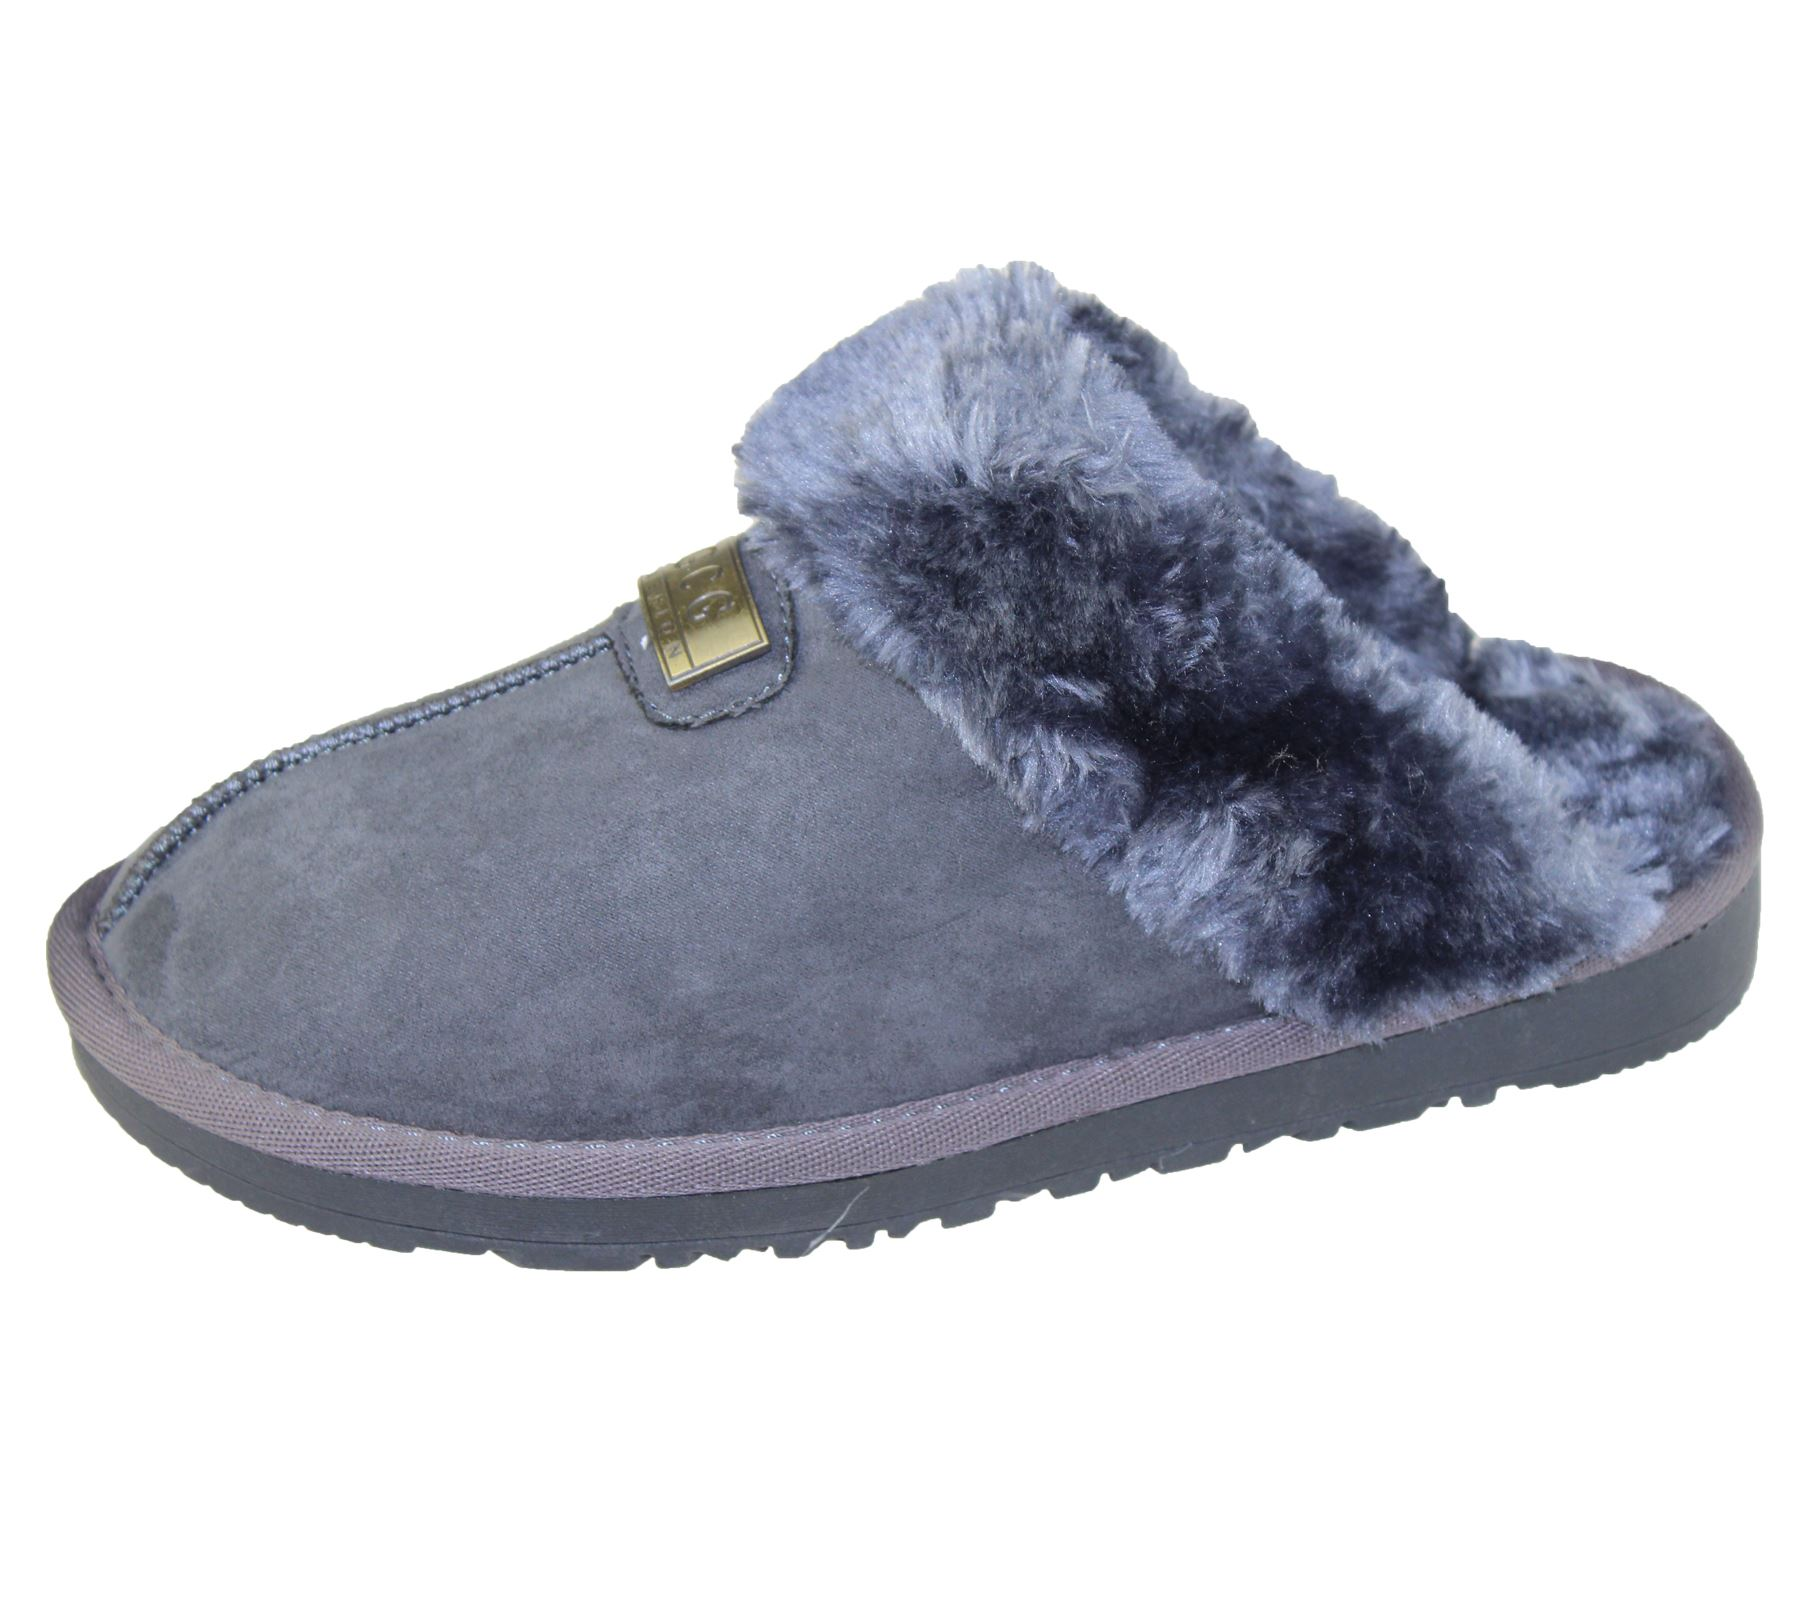 womens fur lined slippers mules non slip rubber